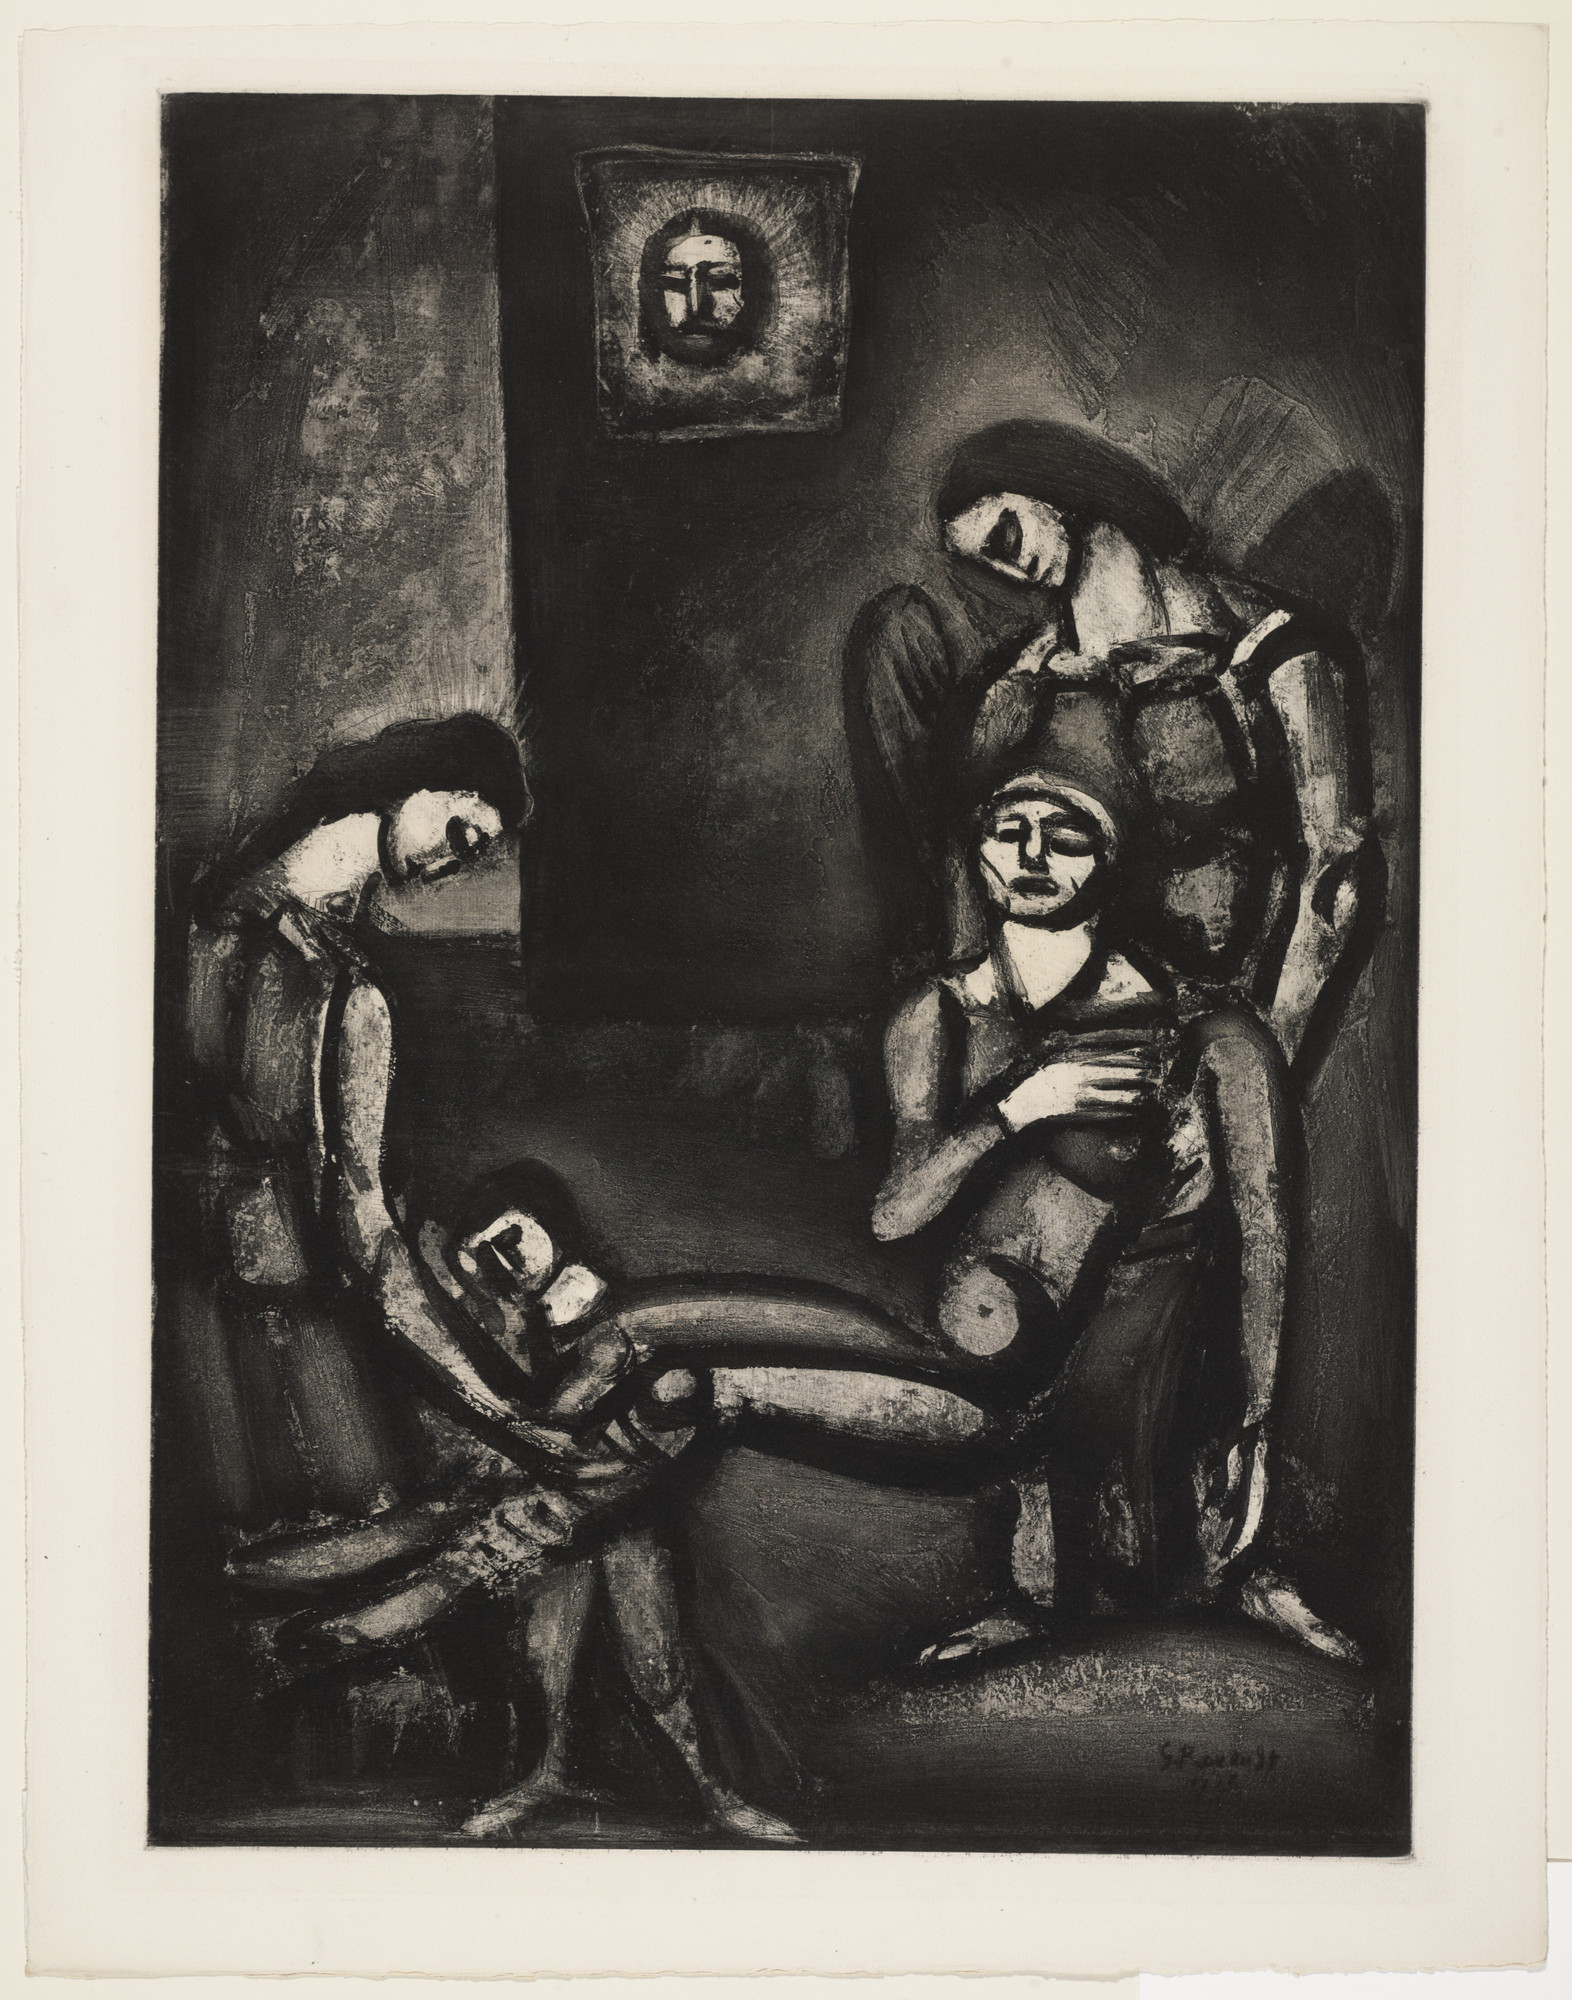 "Georges Rouault. ""The Righteous, like Sandalwood, Perfume the Axe That Falls on Them"" («Le Juste comme le bois de santal parfume la hache qui le frappe»), plate XLVI from Miserere. 1926, published 1948"